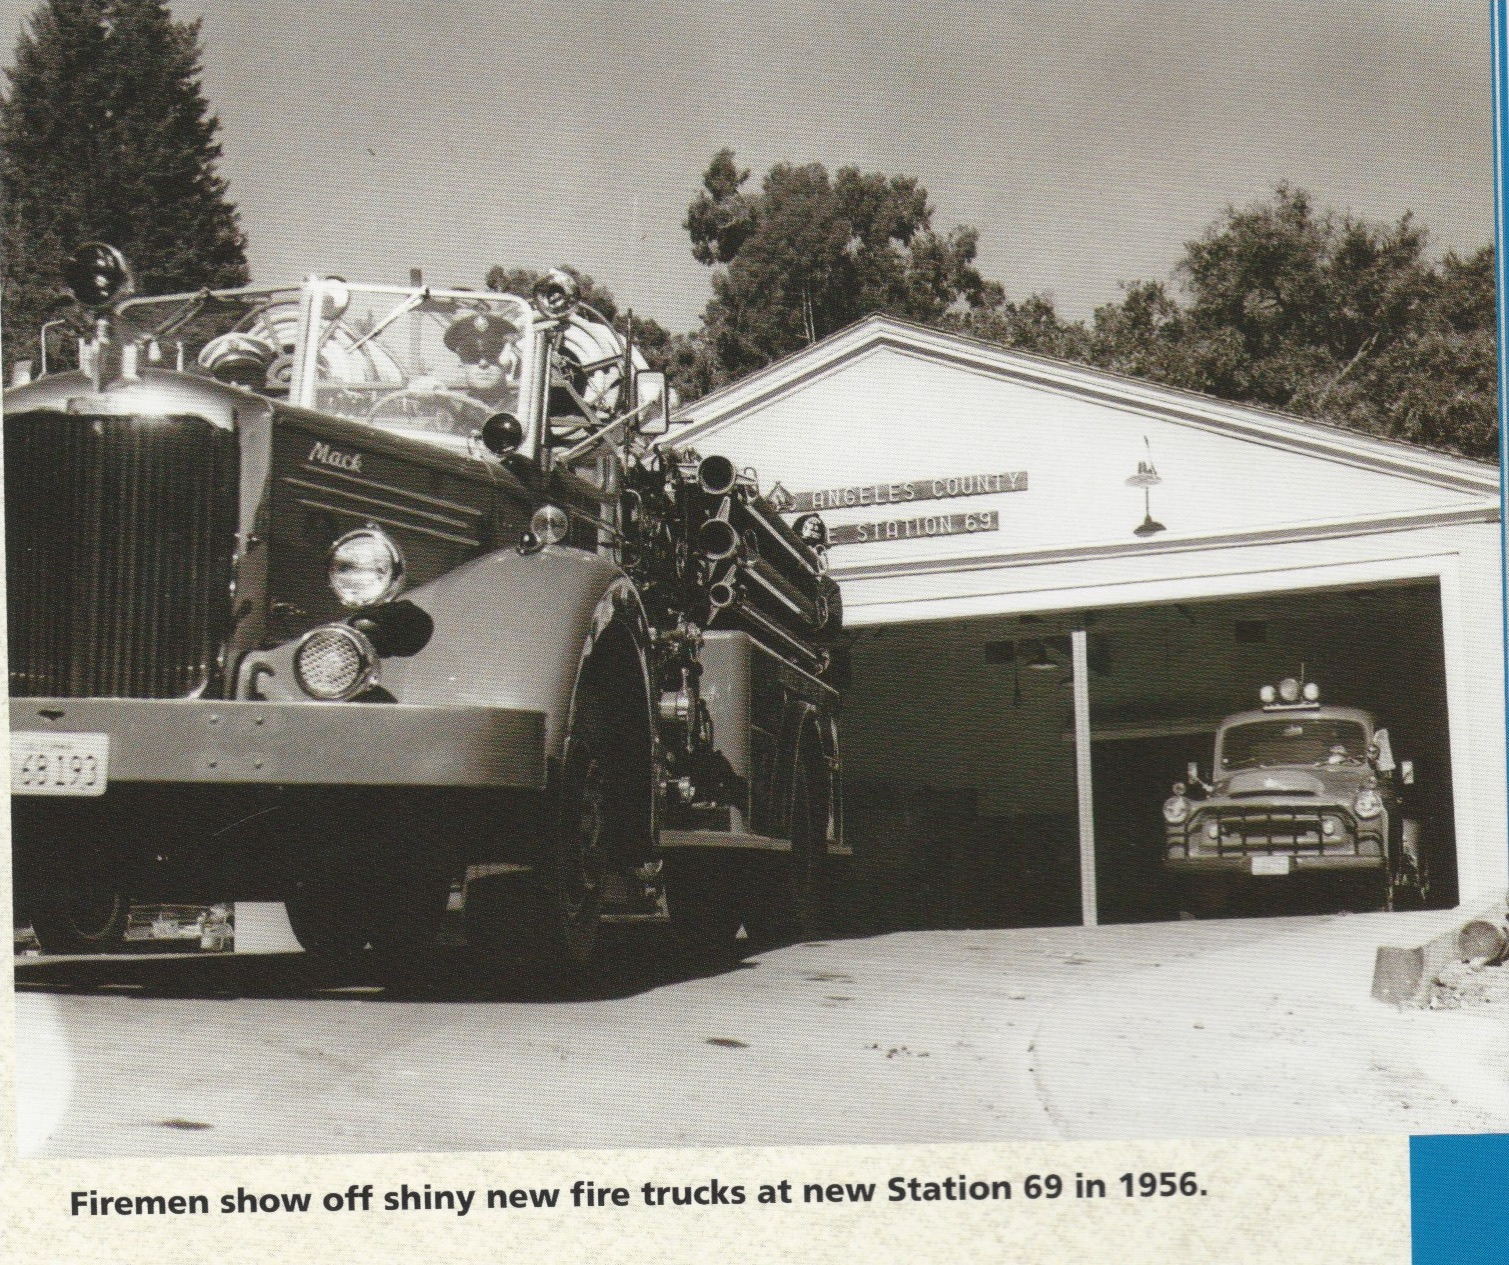 Station 69 Fire Truck 1956 Topanga Historical Society lores